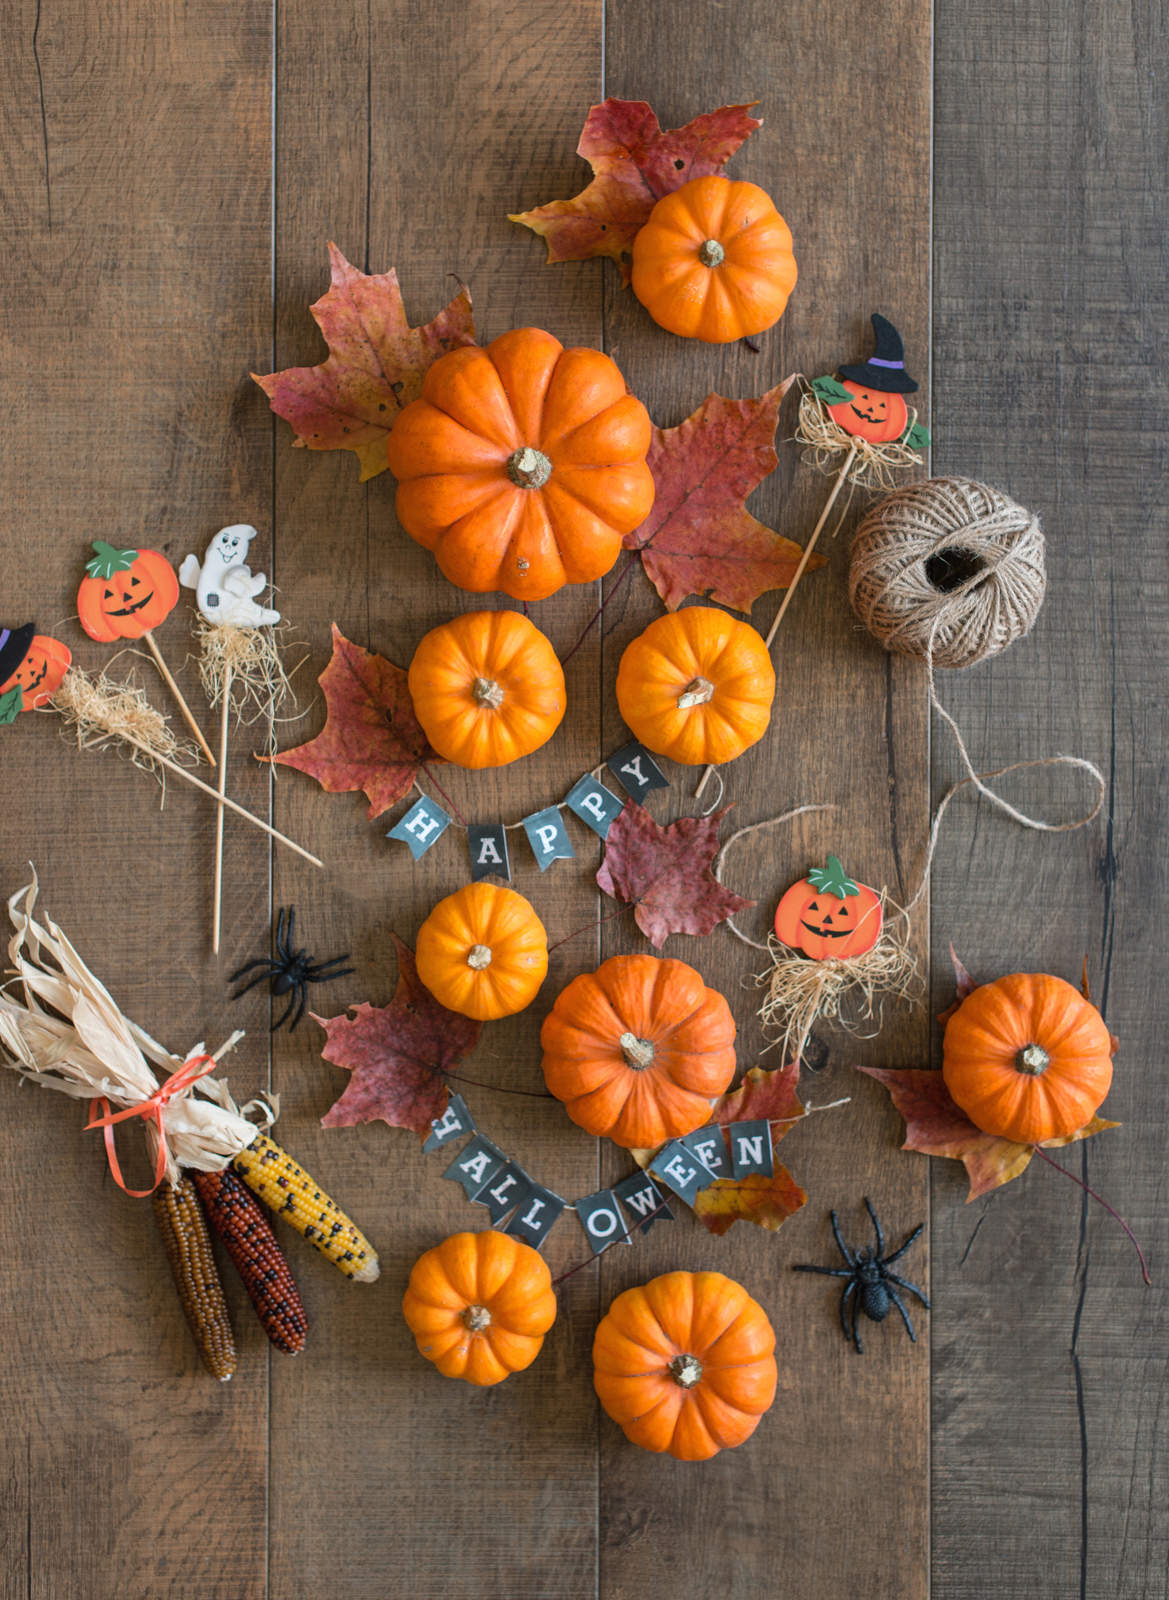 Blog-Mode-And-The-City-Lifestyle-Halloween-deguisement